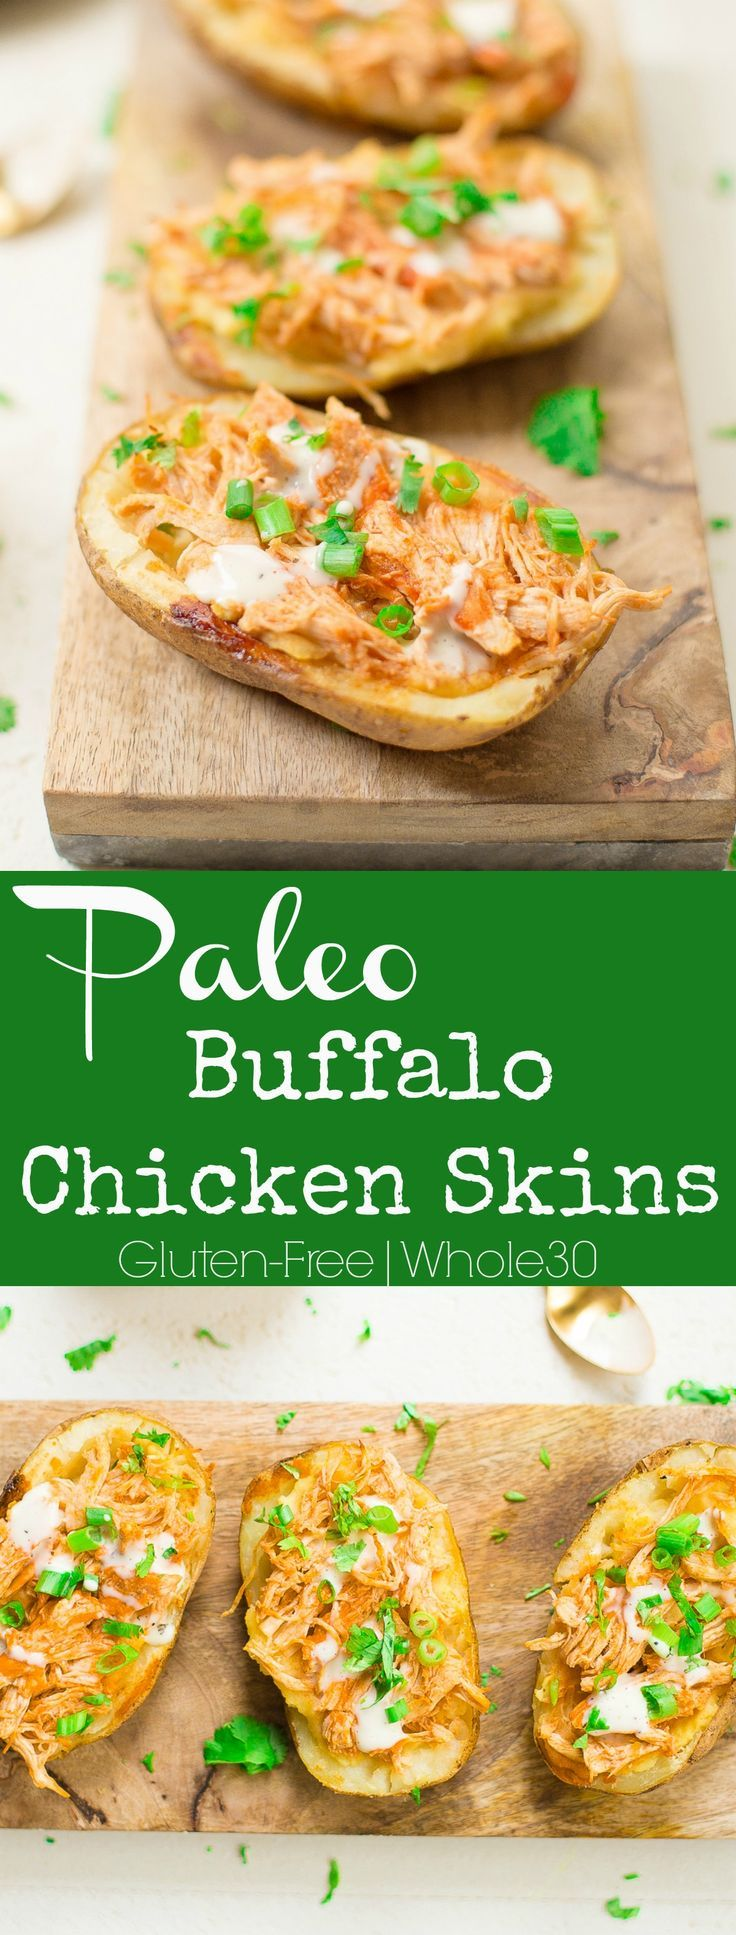 PERFECT game day food! These Buffalo Chicken Potato Skins are so delicious and loved by all! #paleo #whole30